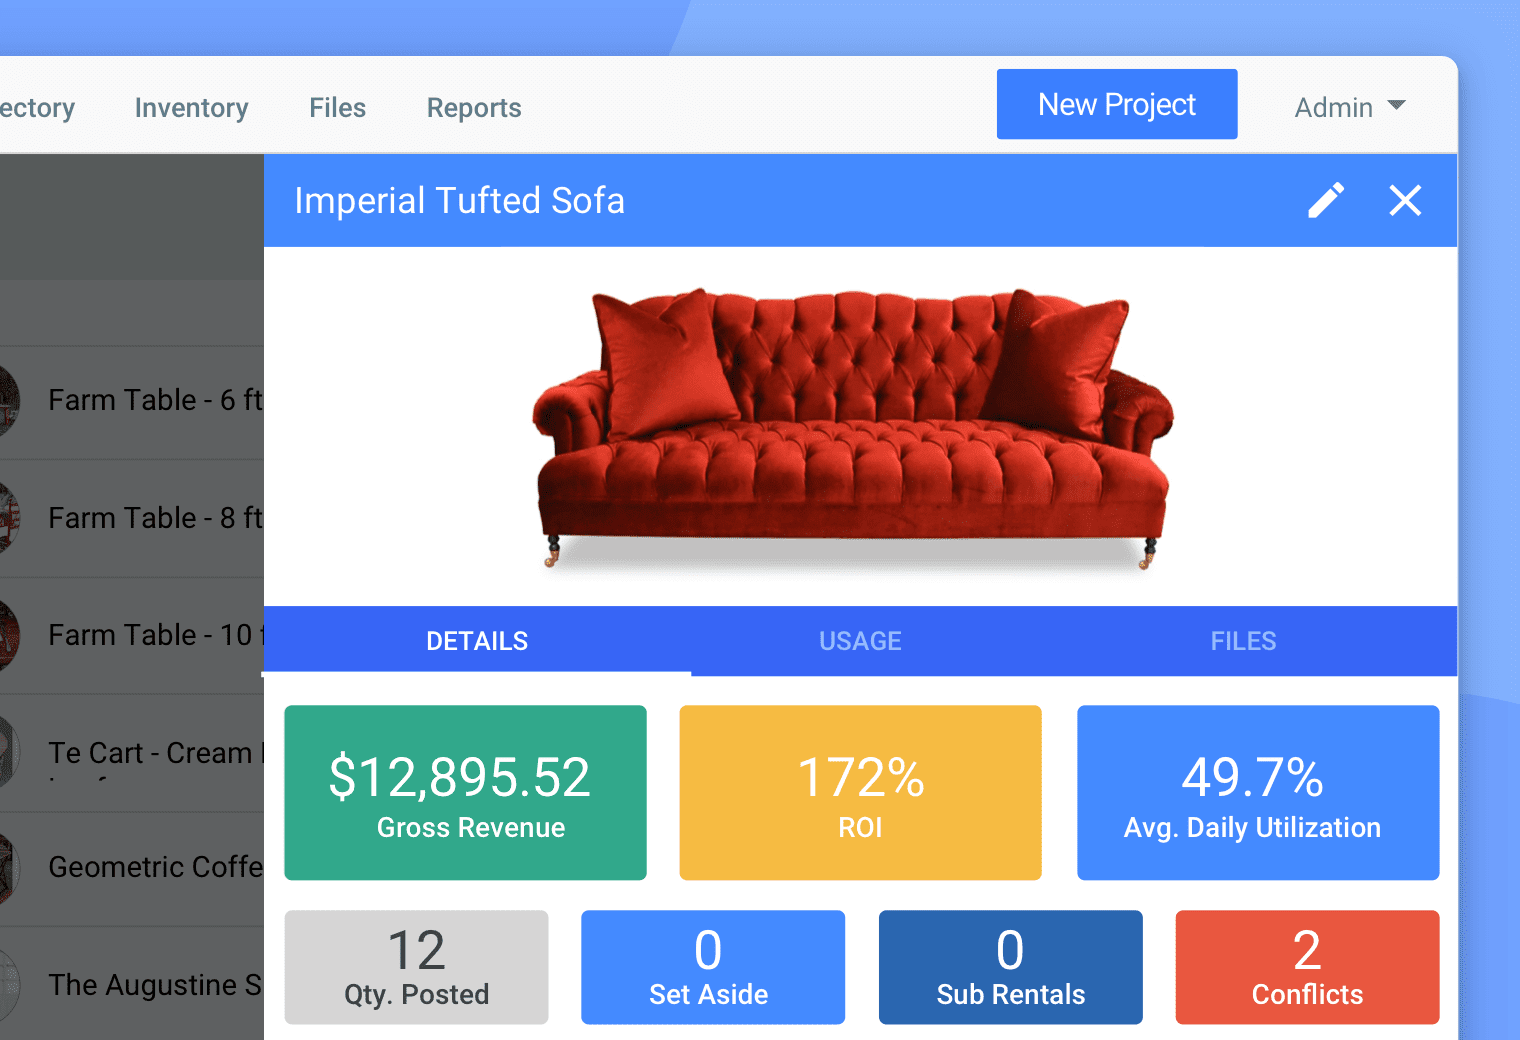 Inventory tracking in Goodshuffle Pro, event rental management software